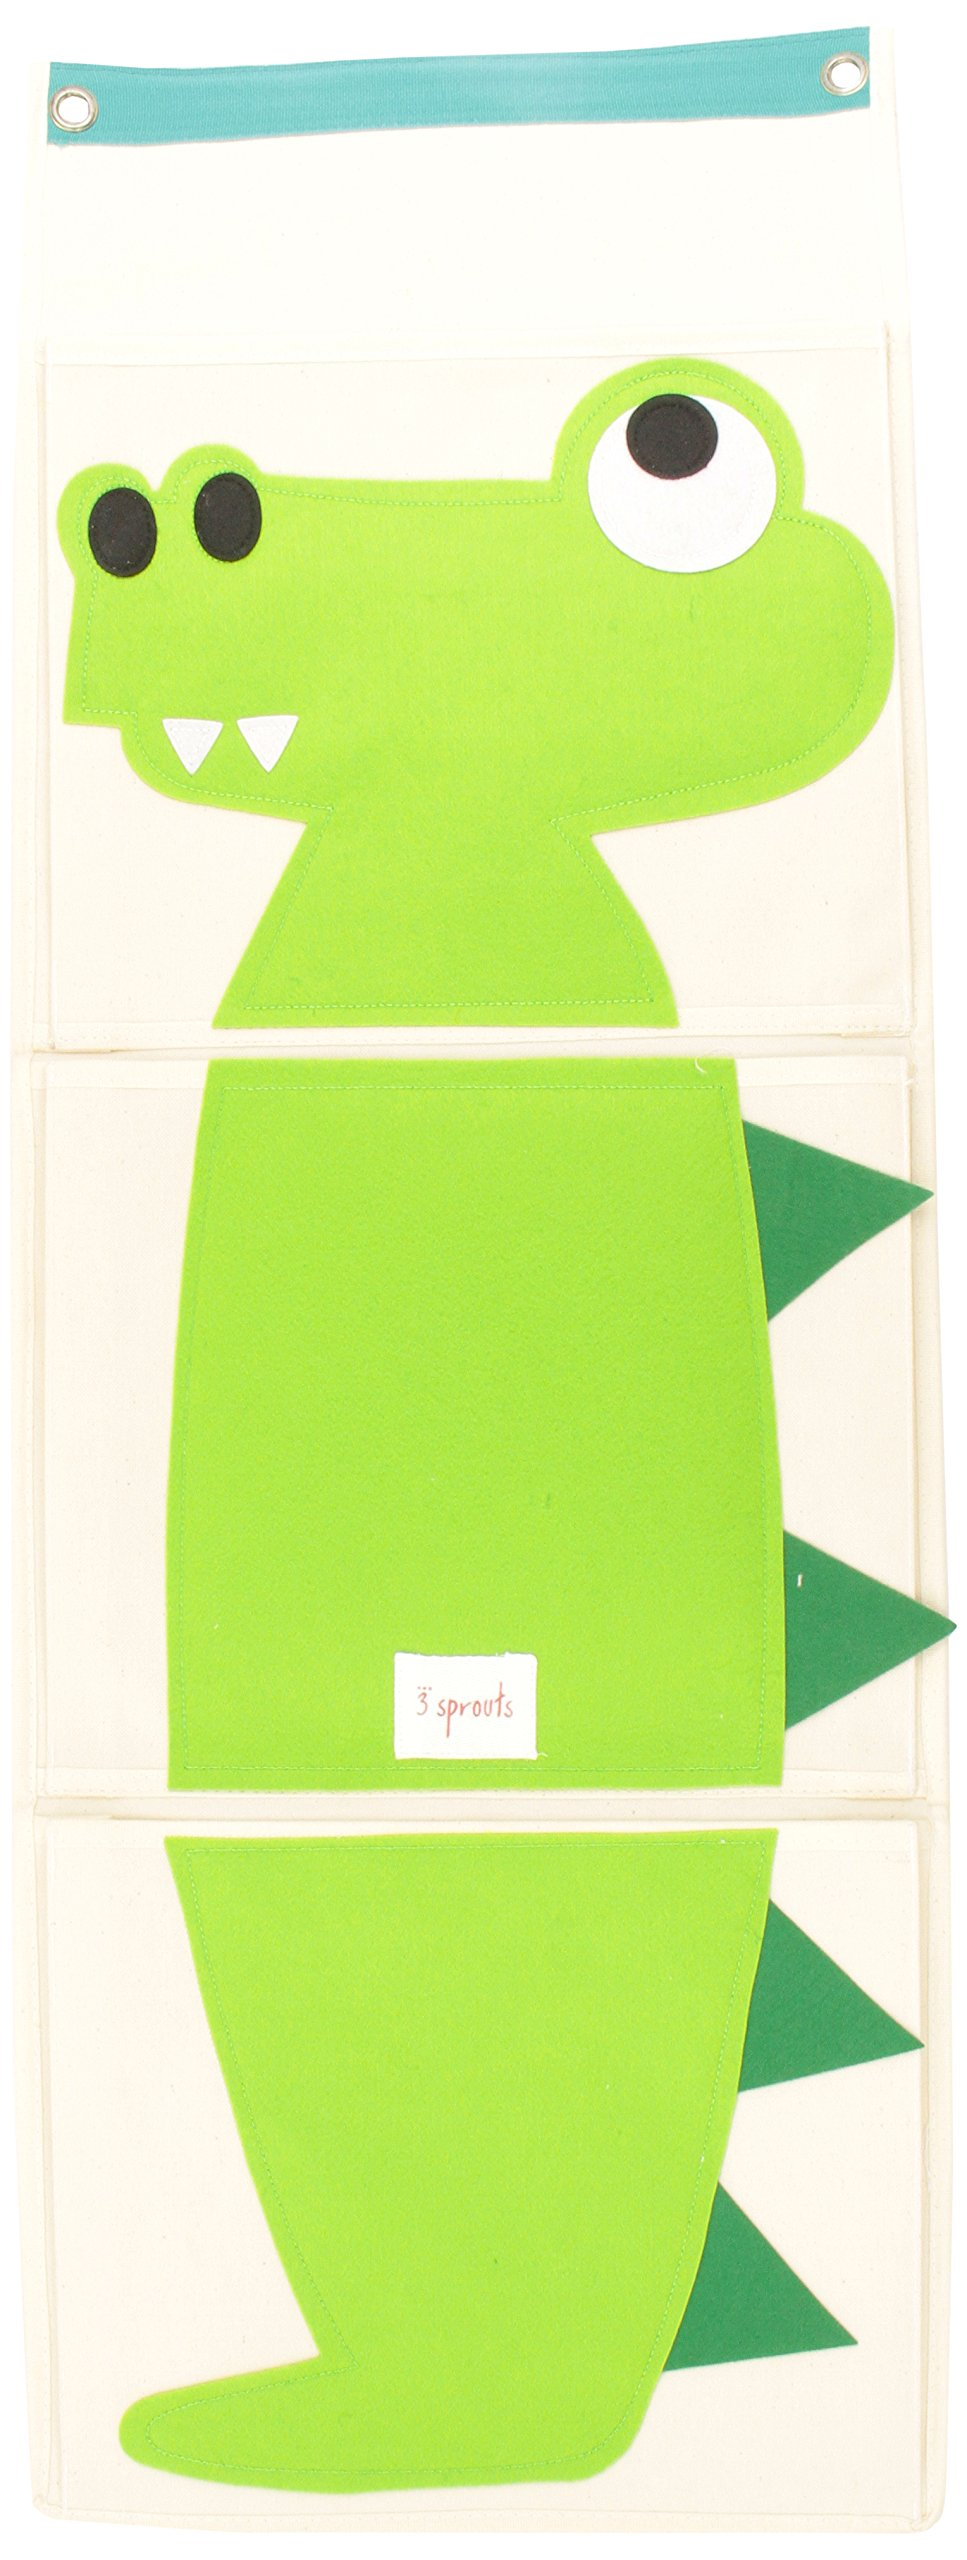 3 Sprouts Wall Organizer, Crocodile by 3 Sprouts